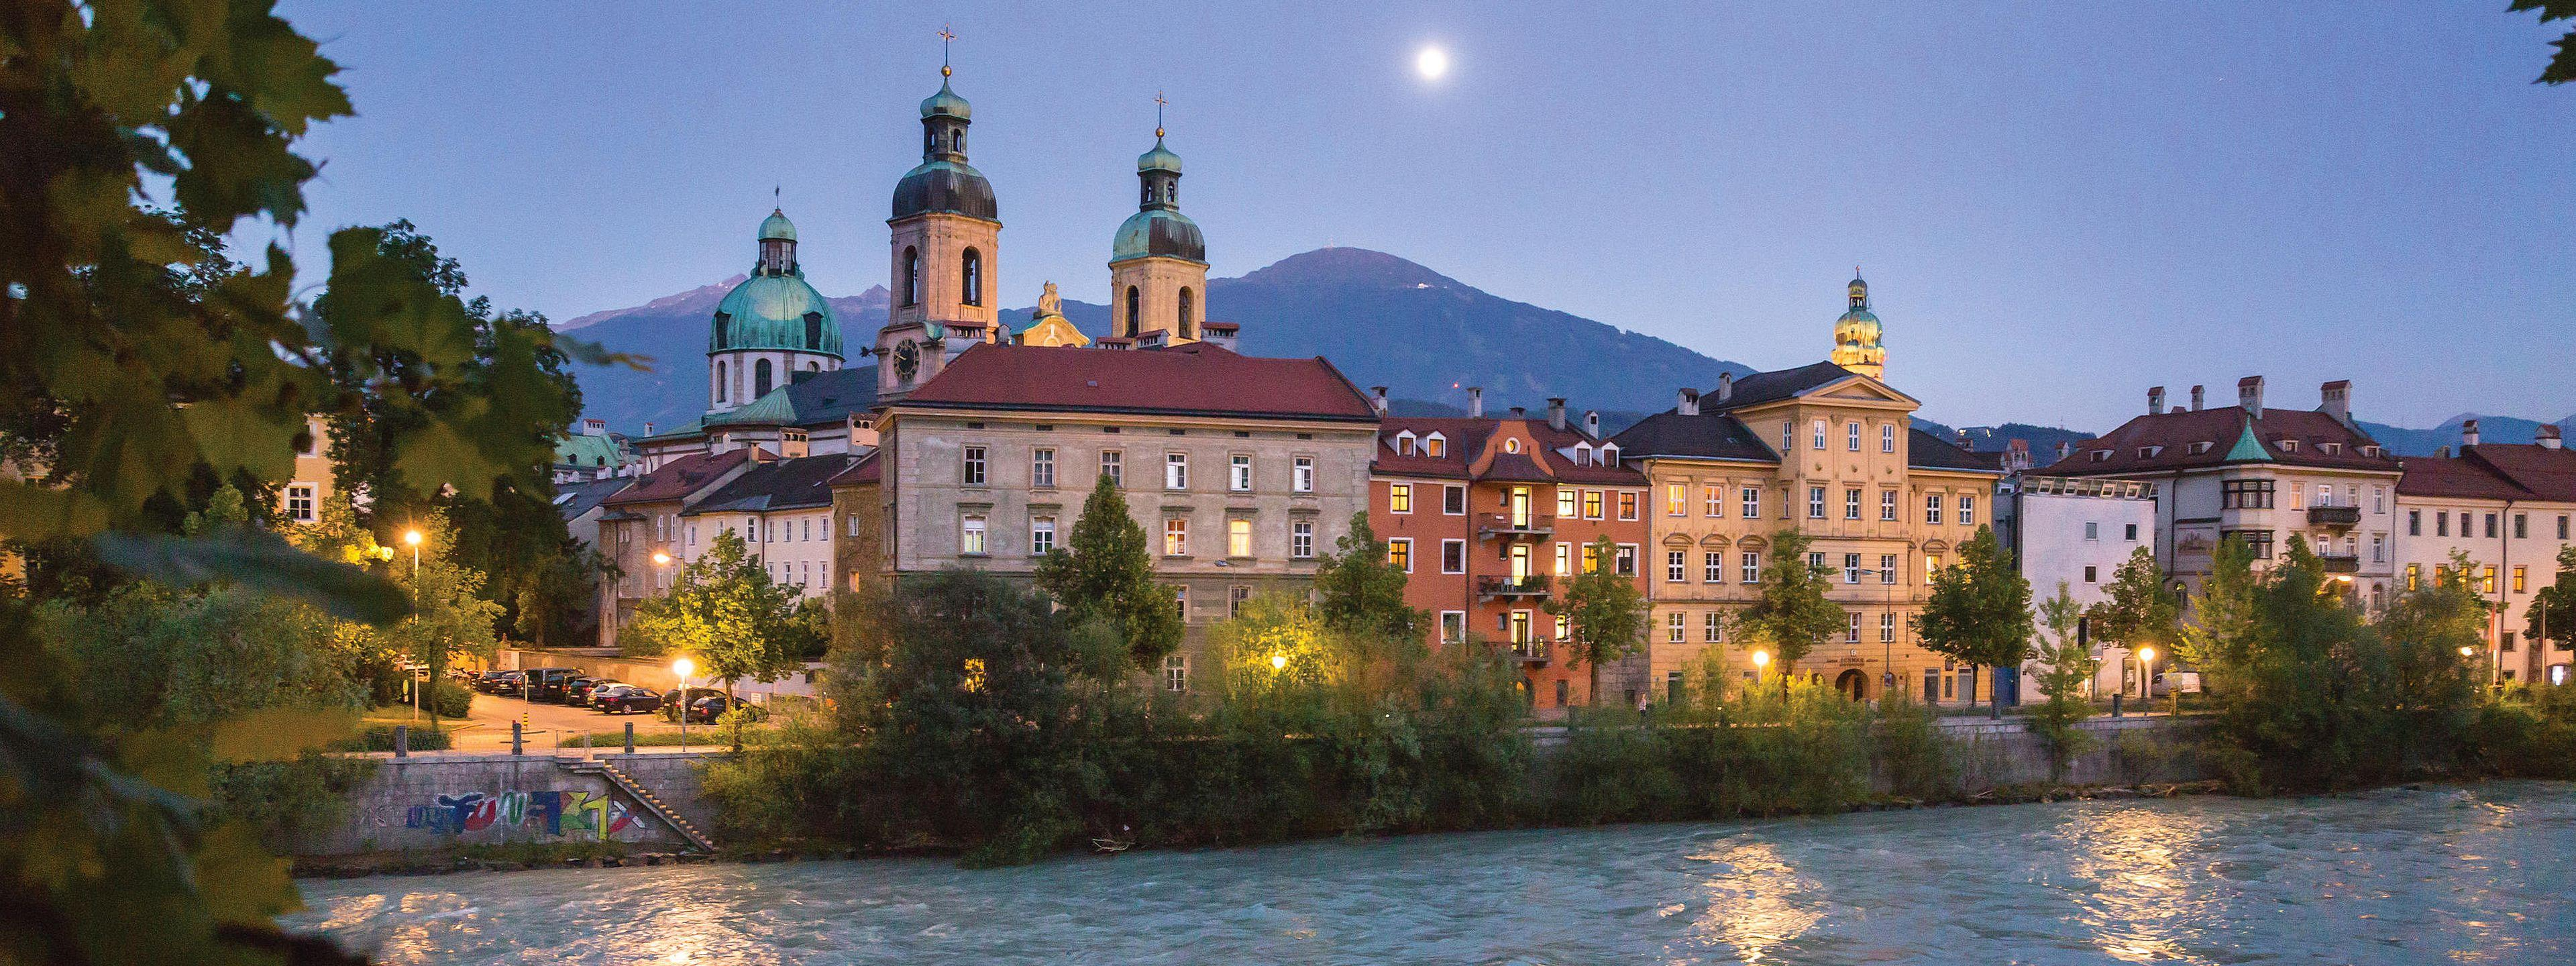 Innsbruck Evening